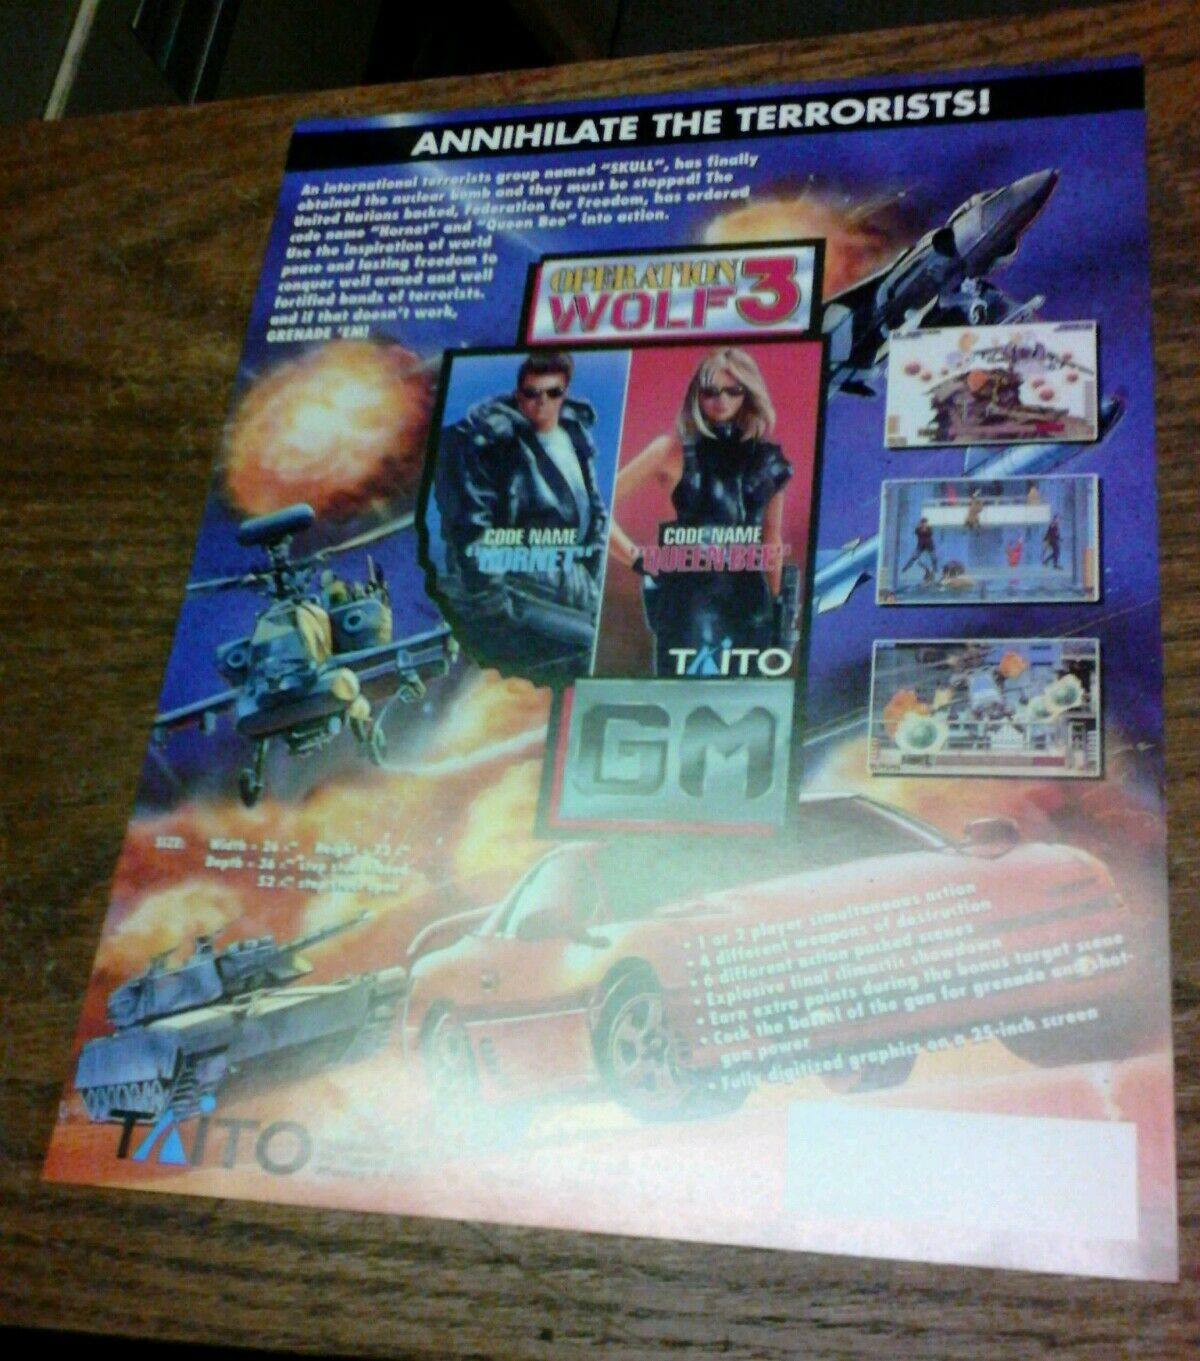 Taito OPERATION WOLF 3 Arcade Video Game flyer wiring diagram apsma wiring diagram massey ferguson 240 \u2022 45 63 74 91  at pacquiaovsvargaslive.co